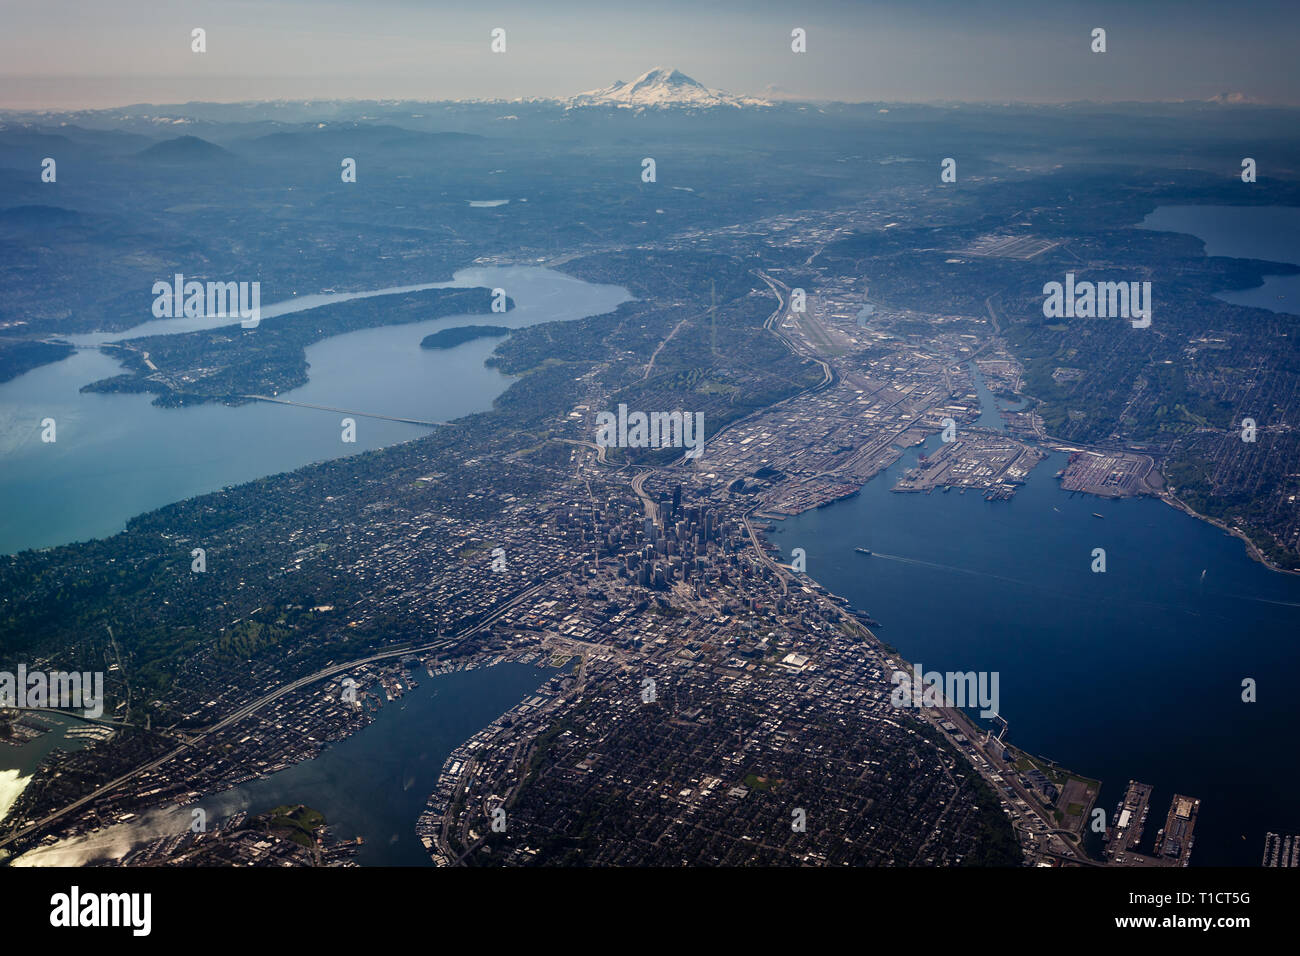 Aerial view of Seattle urban sprawl and bays with snow capped mountain in the distance - Stock Image